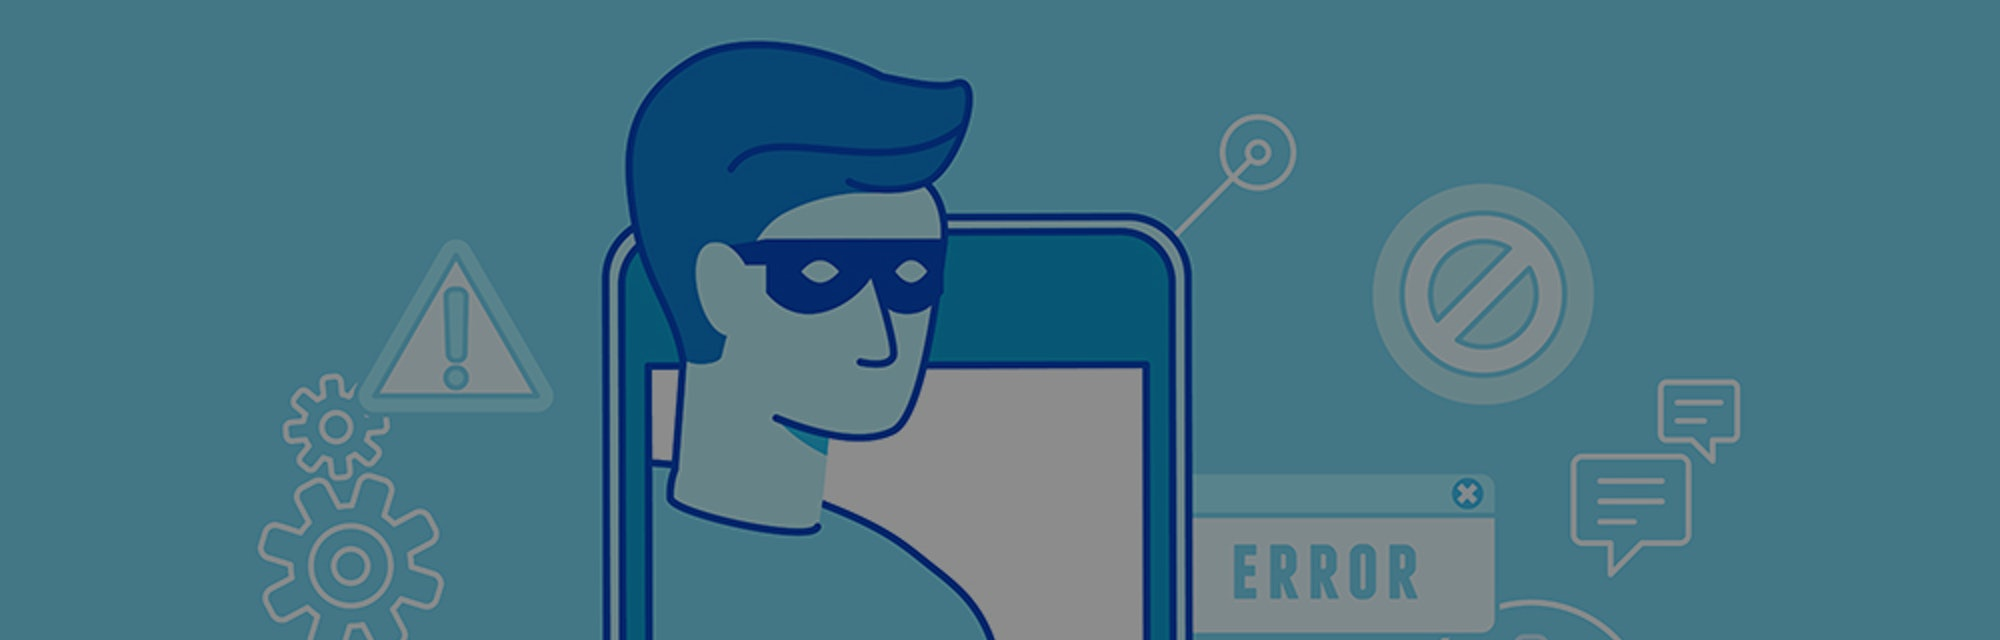 Vector illustration in modern flat linear style. A hacker can be seen stealing credit card data. The dominant colors in this illustration are light blue, dark blue, teal, soft white, and green.